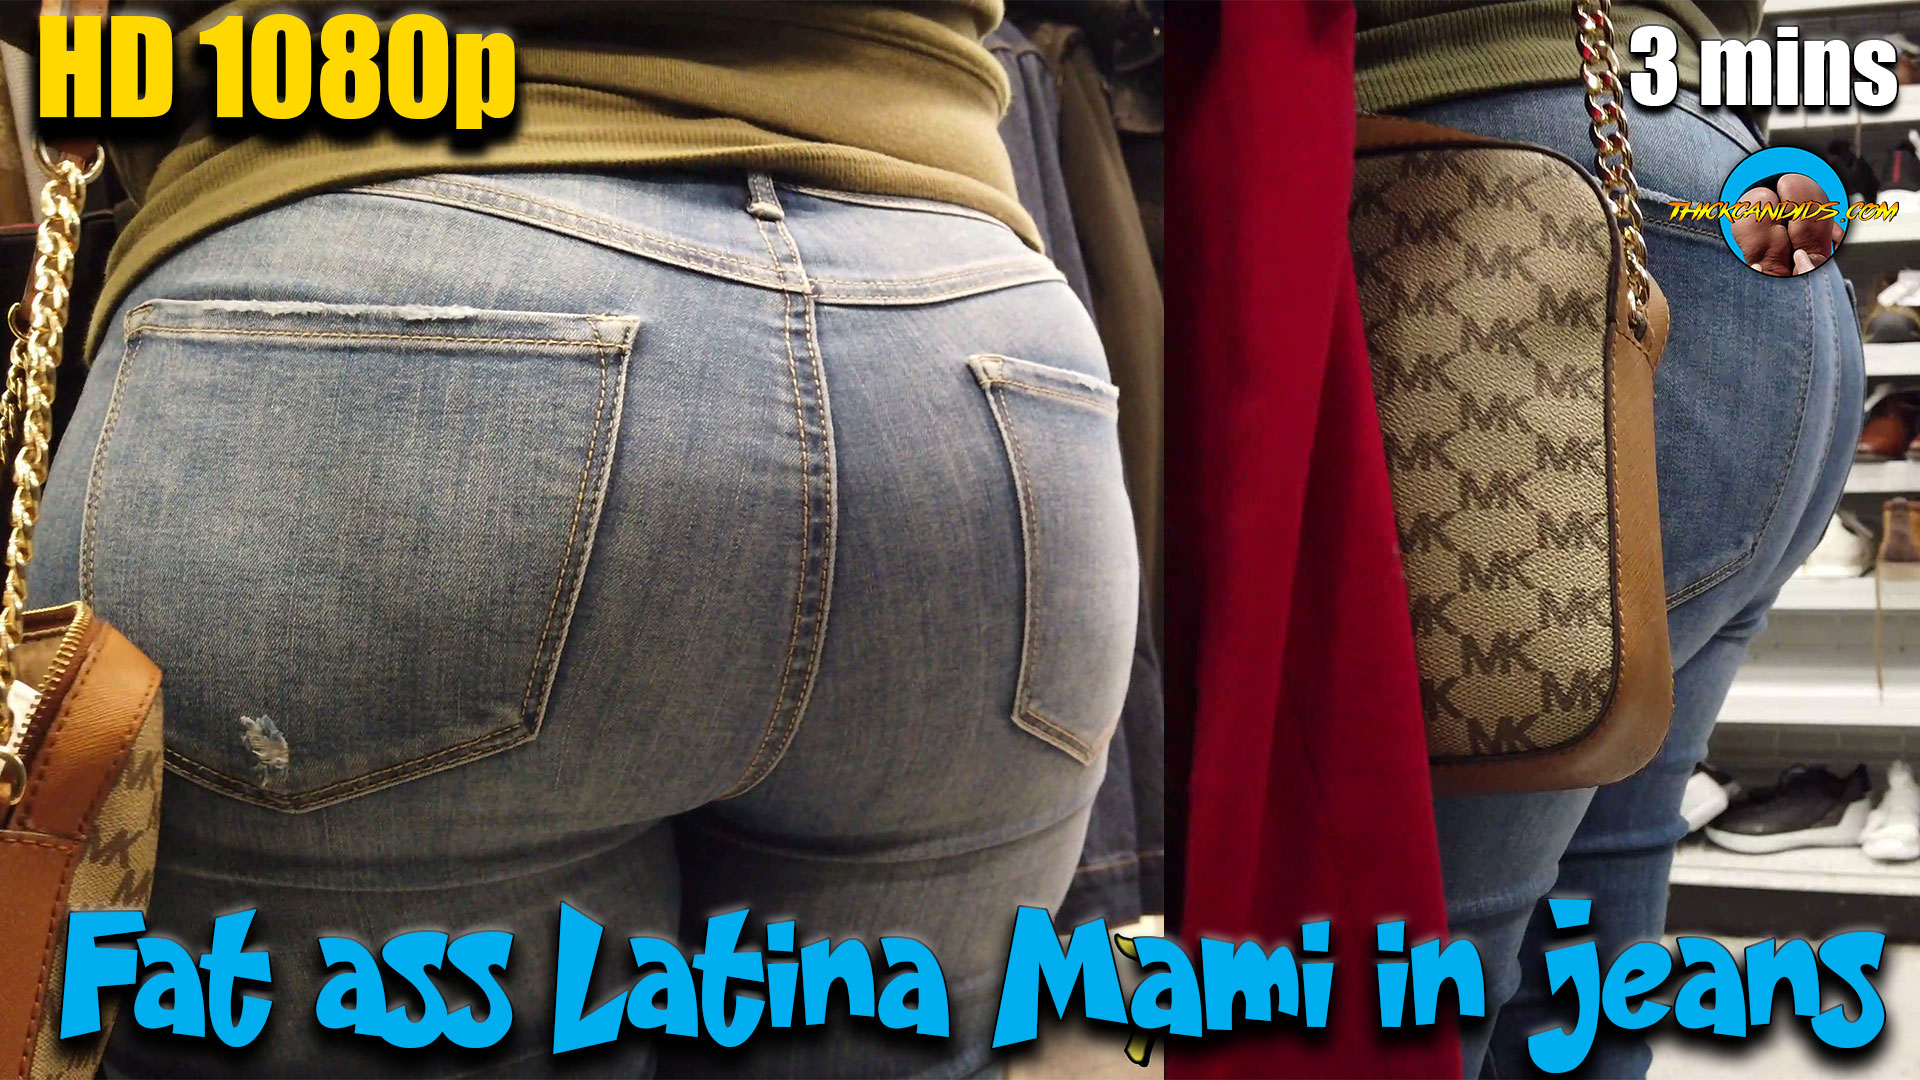 Fat-ass-Latina-Mami-in-jeans